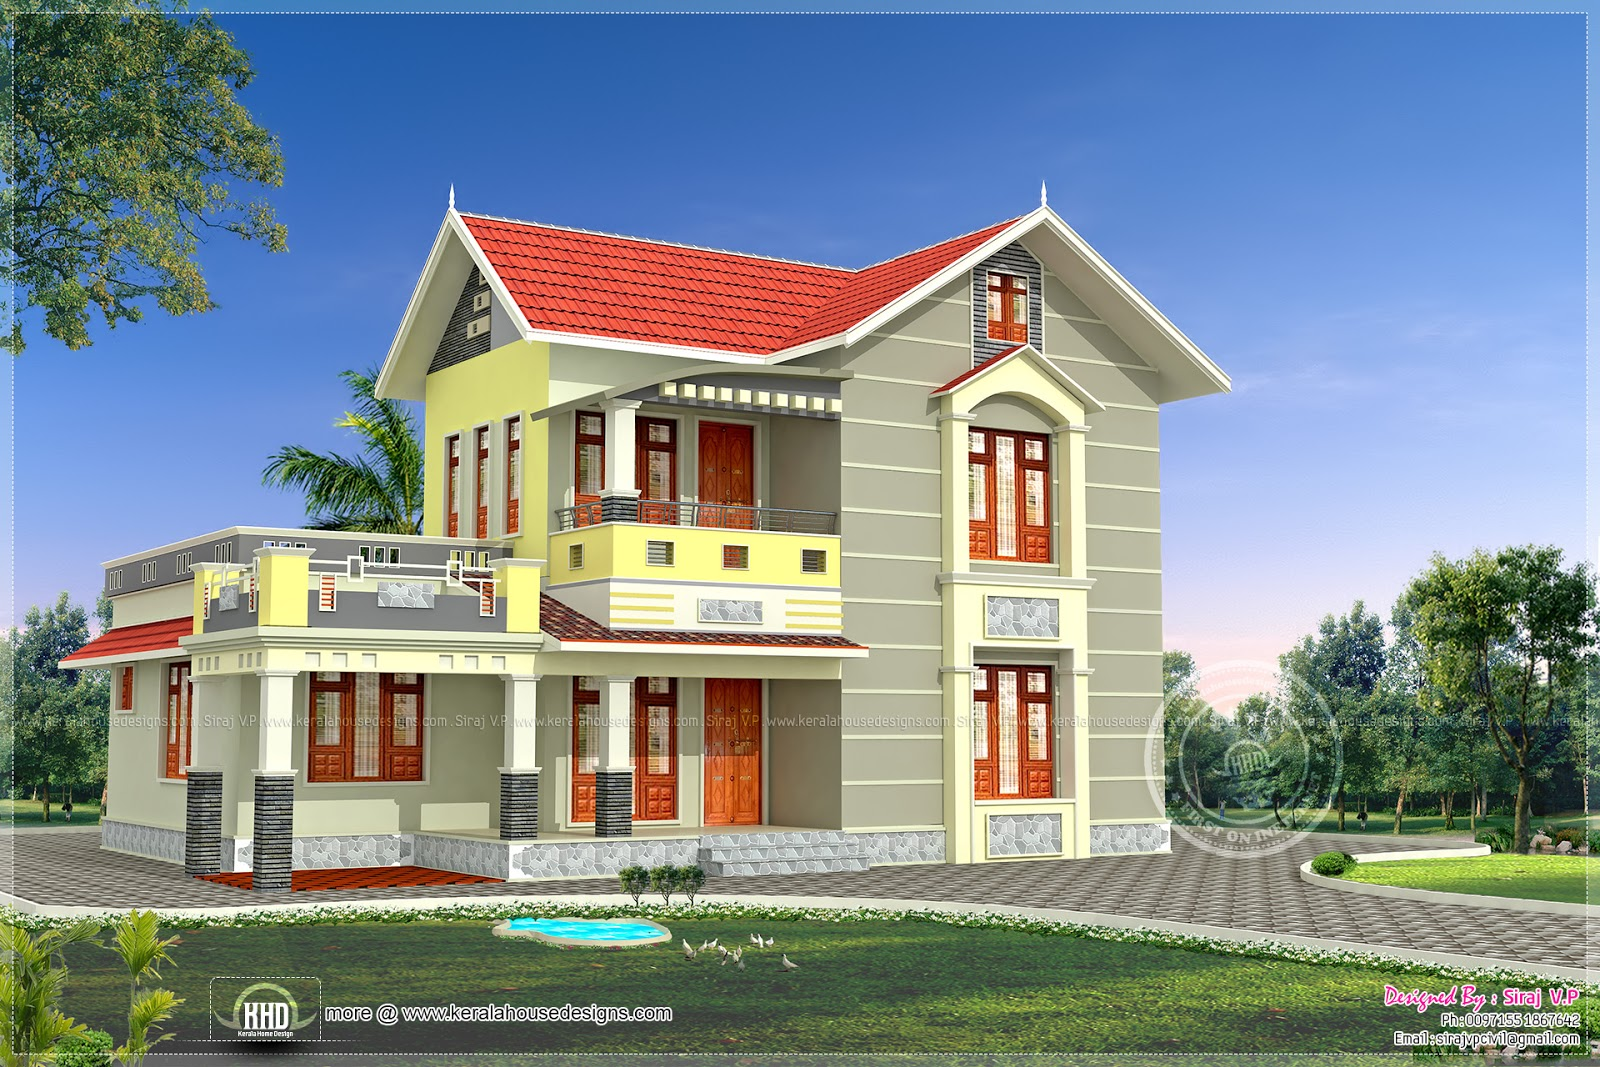 2 Bedroom Texas Ranch House Plans likewise Art Deco House Plans Drawings in addition 6 Bedroom Open Floor Plan Designs together with 300 Sq Ft Home Plans With Loft besides Efficient Church Floor Plans. on small cottage house floor plans 3d